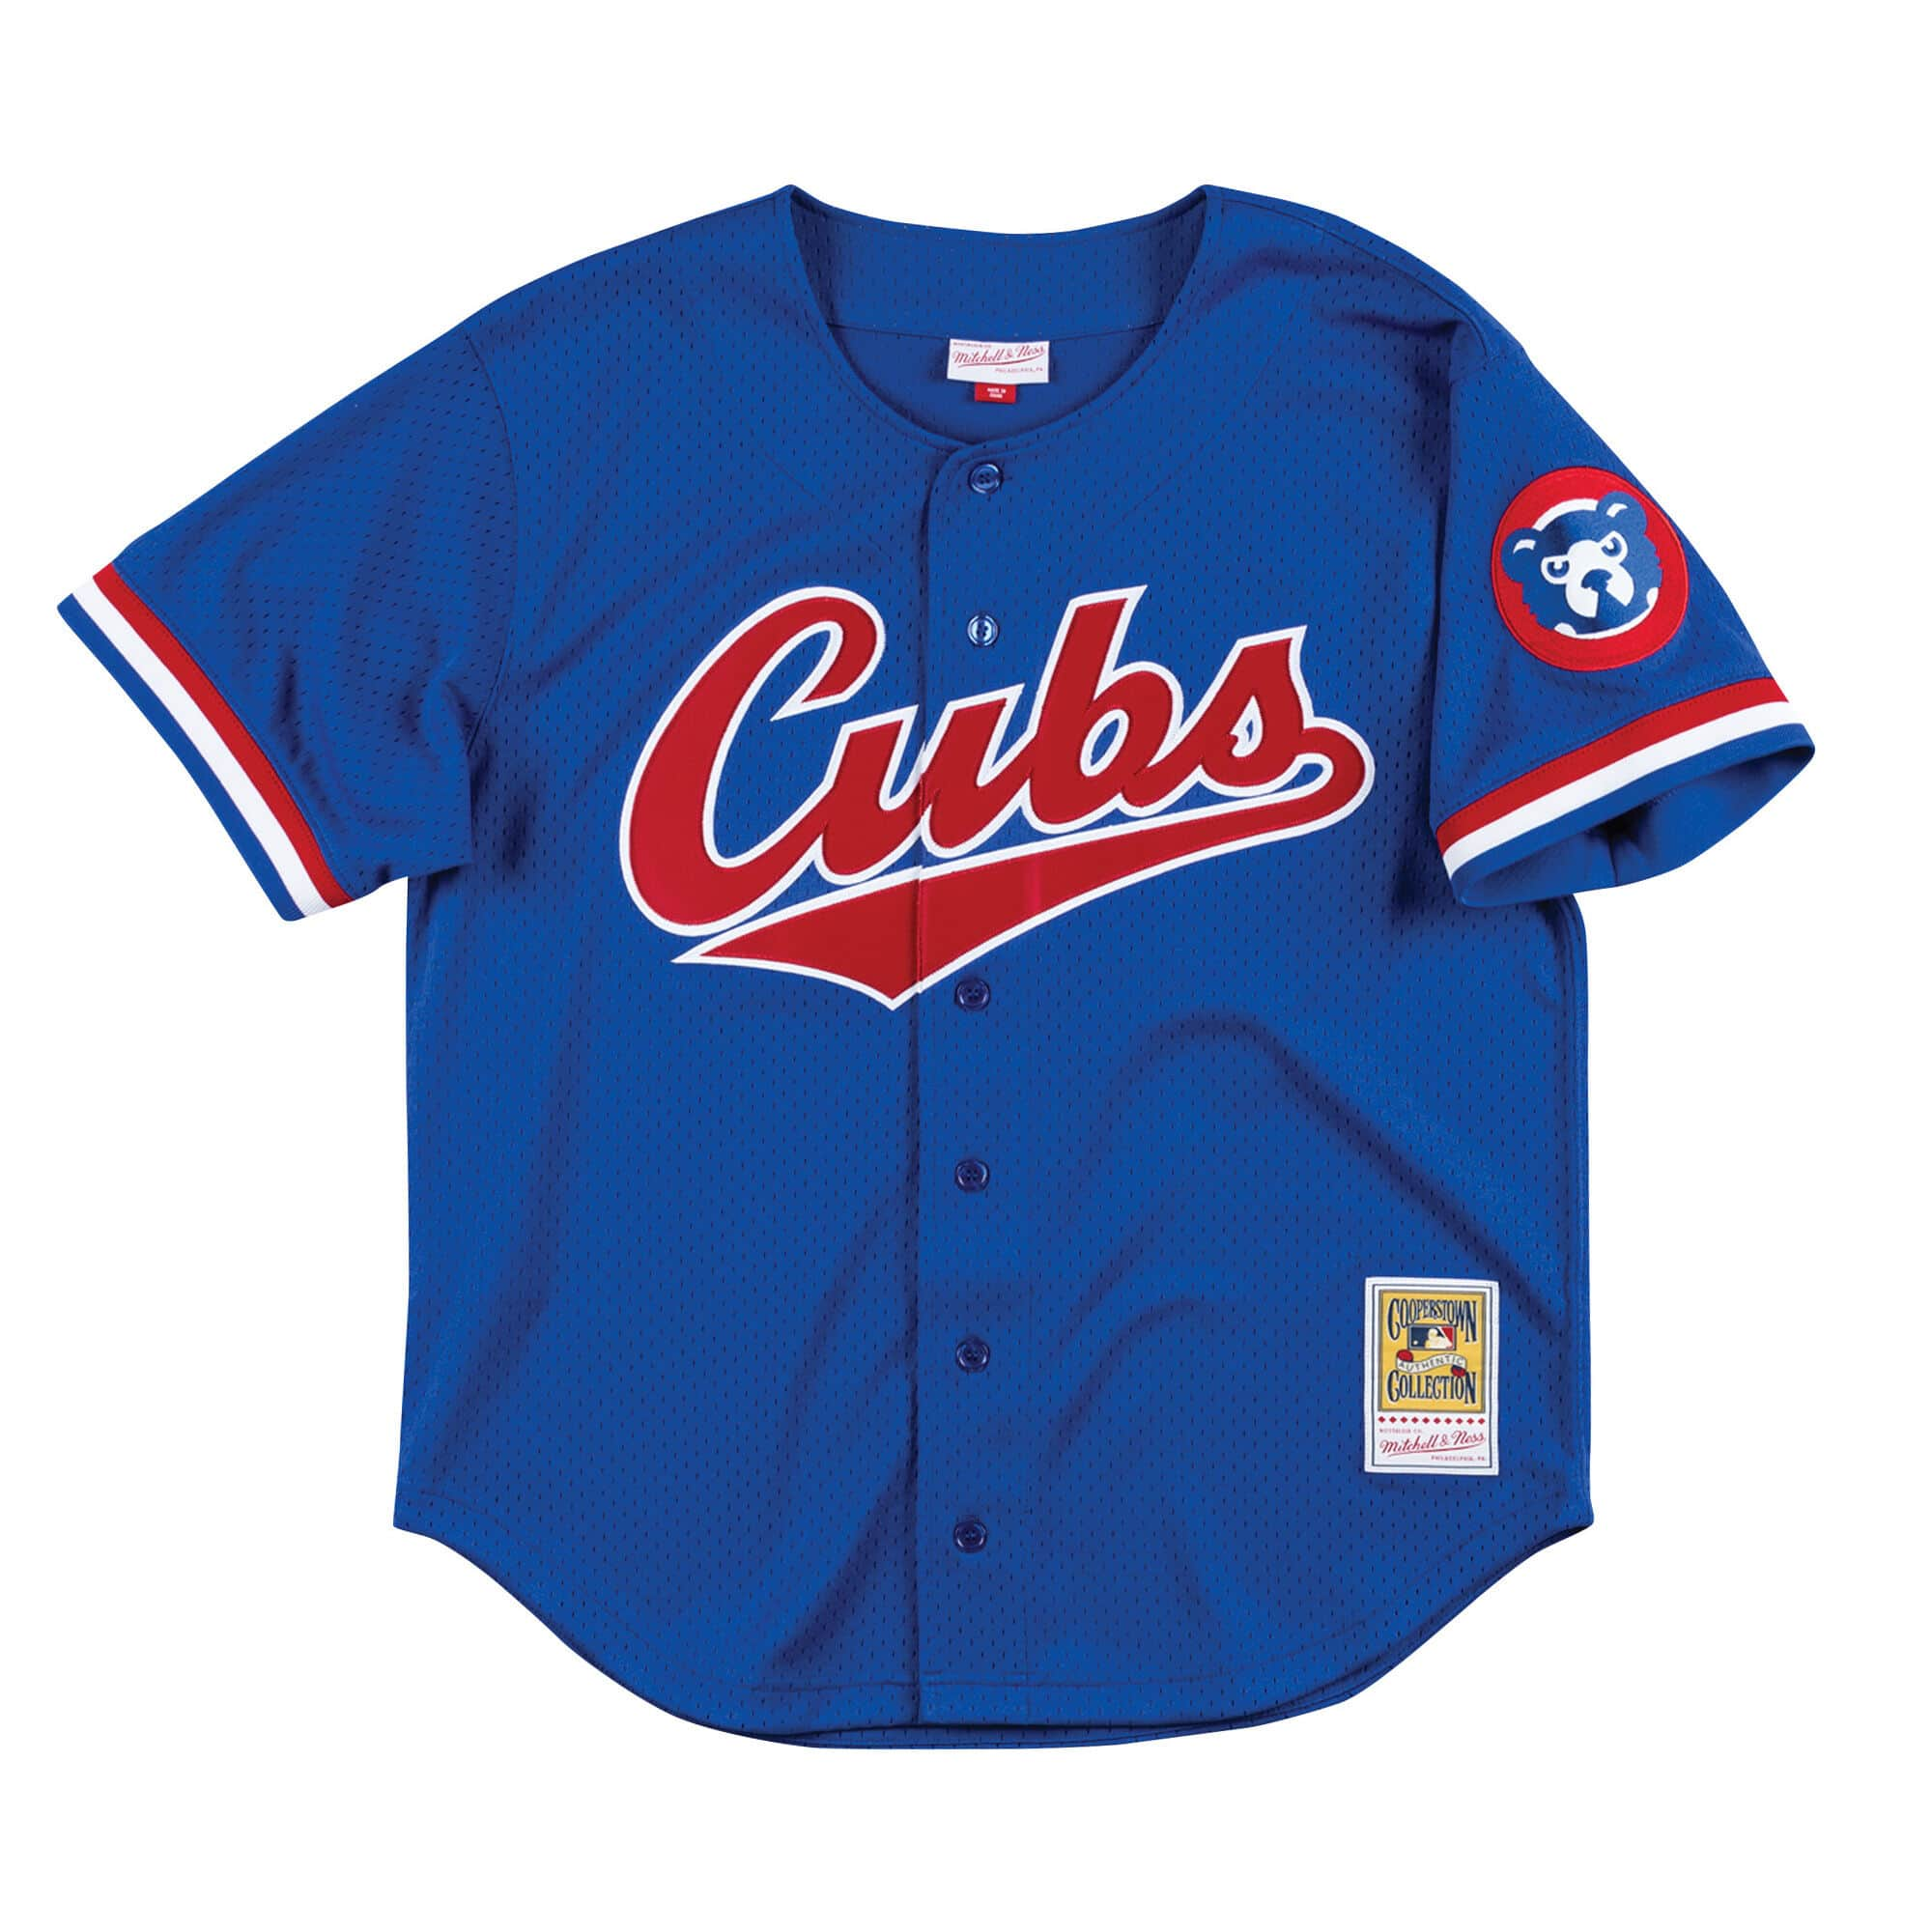 Authentic Mesh BP Jersey Chicago Cubs 1996 Ryne Sandberg